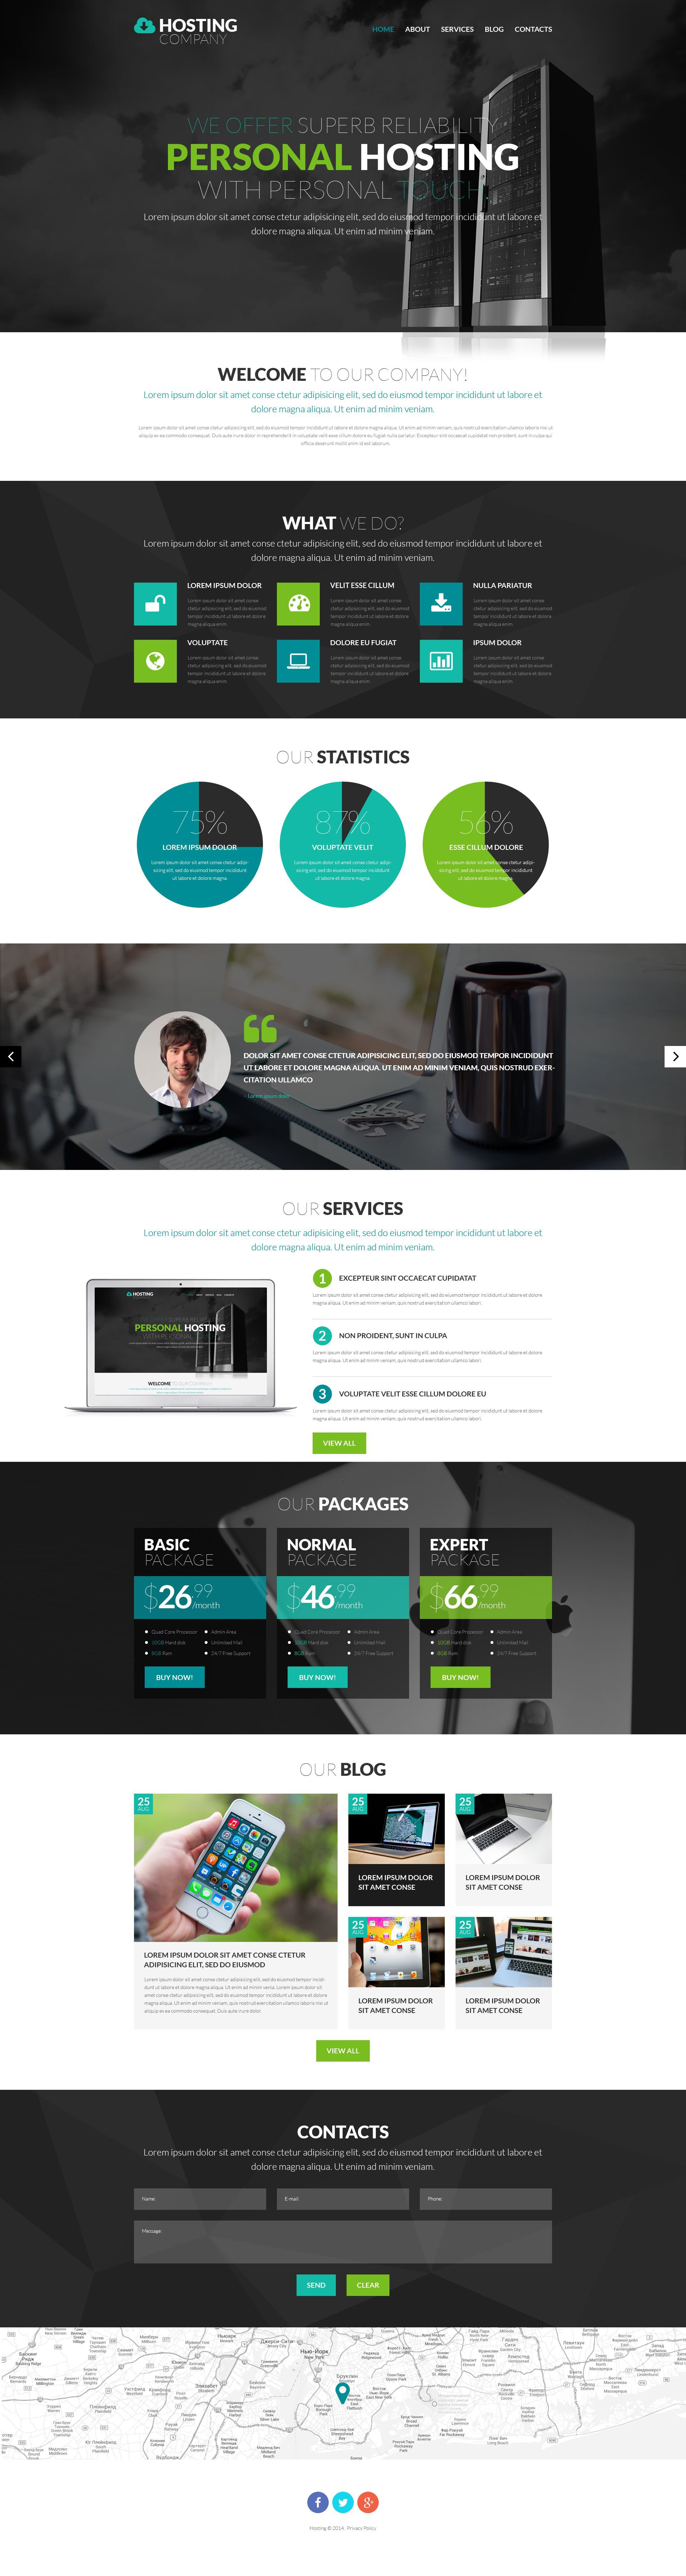 The Hosting Company Solution WordPress Design 53367, one of the best WordPress themes of its kind (software, most popular), also known as hosting company solution WordPress template, domain WordPress template, services WordPress template, beginner WordPress template, plan WordPress template, standard WordPress template, advanced WordPress template, dedicated WordPress template, workteam WordPress template, tools WordPress template, special offer WordPress template, server WordPress template, monitoring WordPress template, management WordPress template, account WordPress template, activation WordPress template, client WordPress template, technology solution WordPress template, data center provider WordPress template, traffic WordPress template, internet WordPress template, web IT processor and related with hosting company solution, domain, services, beginner, plan, standard, advanced, dedicated, workteam, tools, special offer, server, monitoring, management, account, activation, client, technology solution, data center provider, traffic, internet, web IT processor, etc.